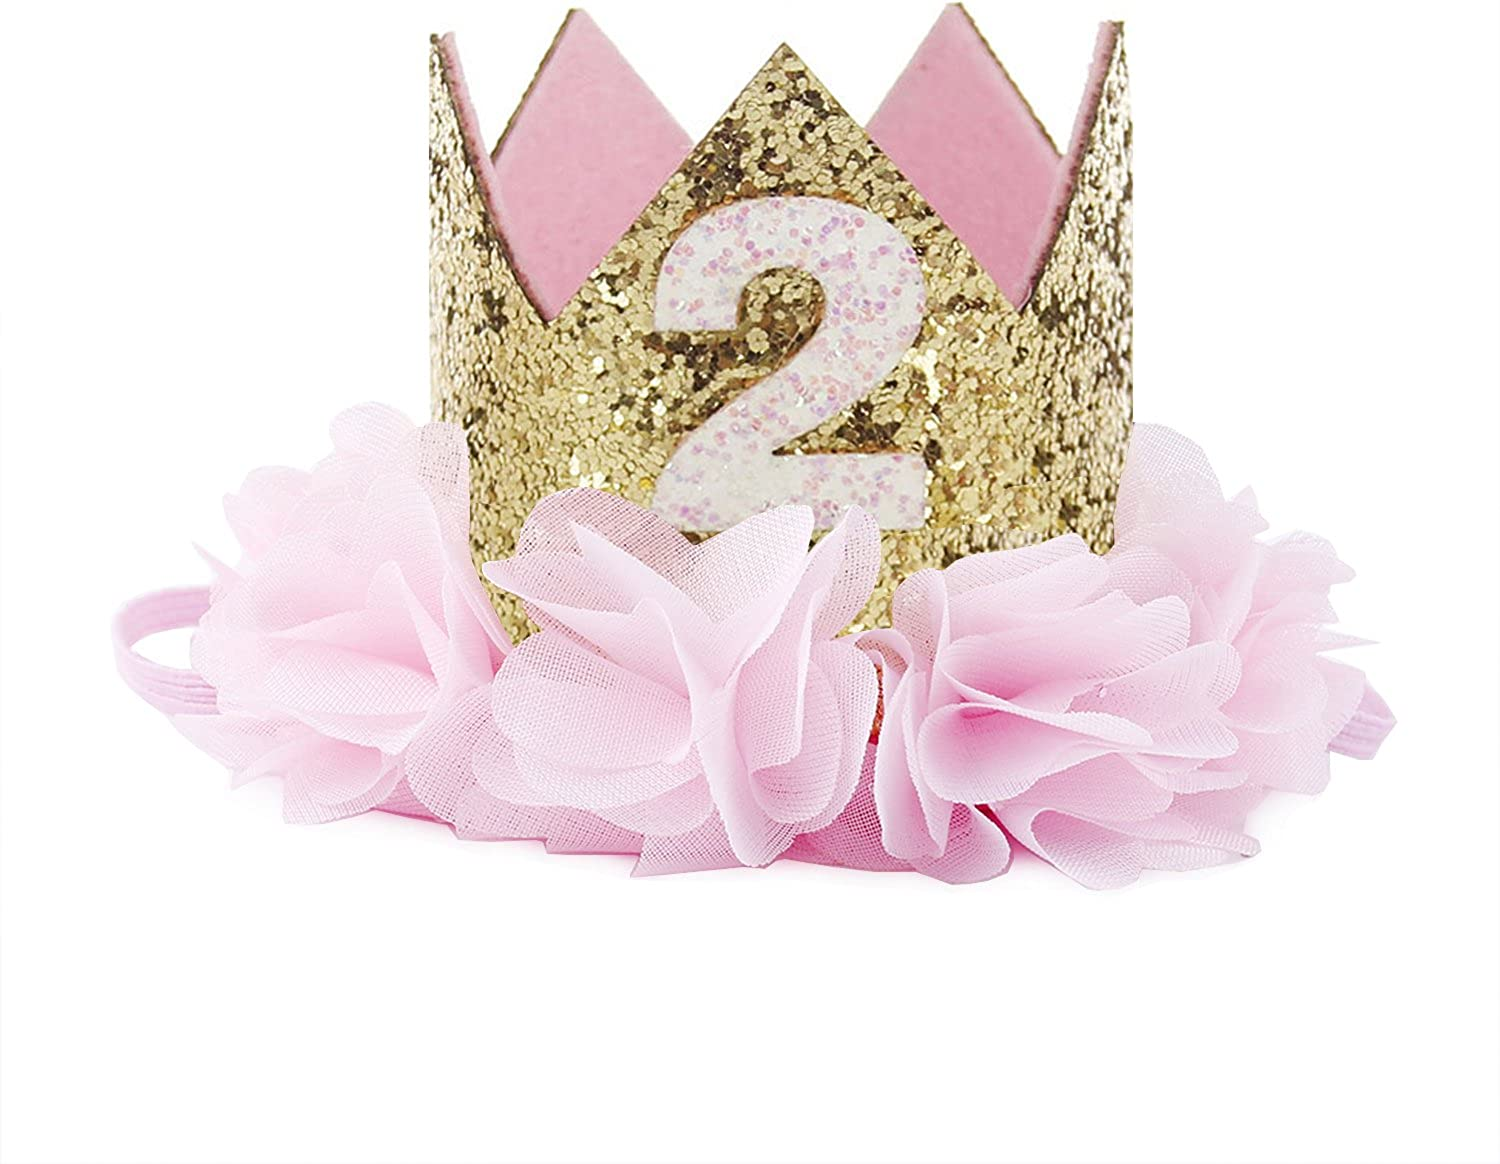 Baby Unisex 1st Birthday Sparkly Party Crown Rose Flower Princess Tiara Headband